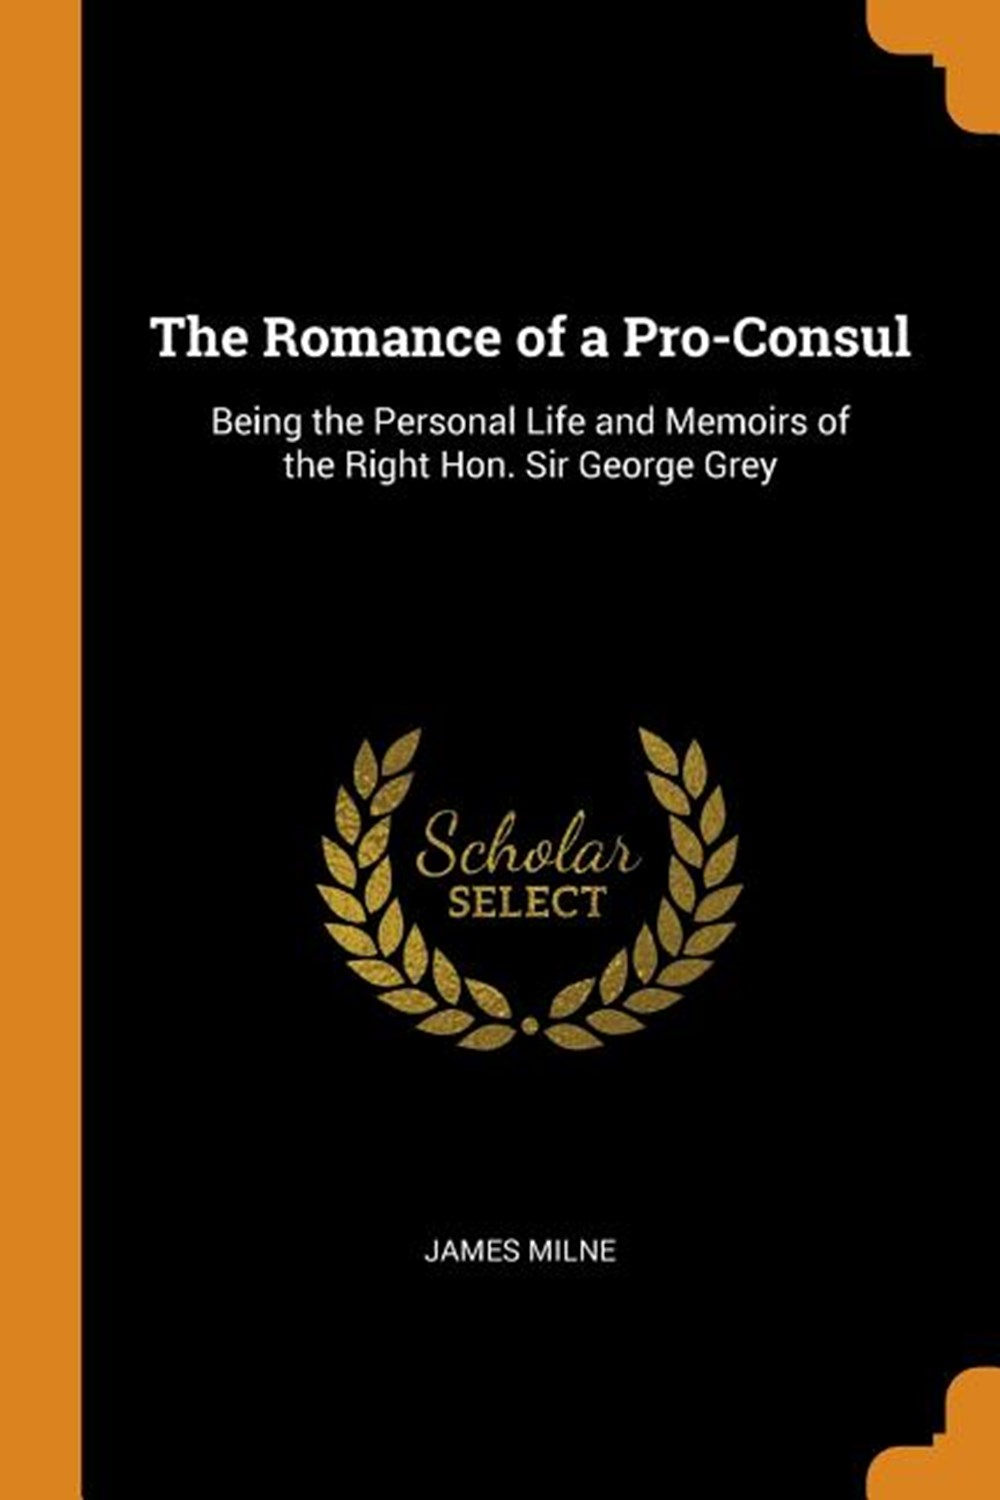 Romance of a Pro-Consul Being the Personal Life and Memoirs of the Right Hon. Sir George Grey